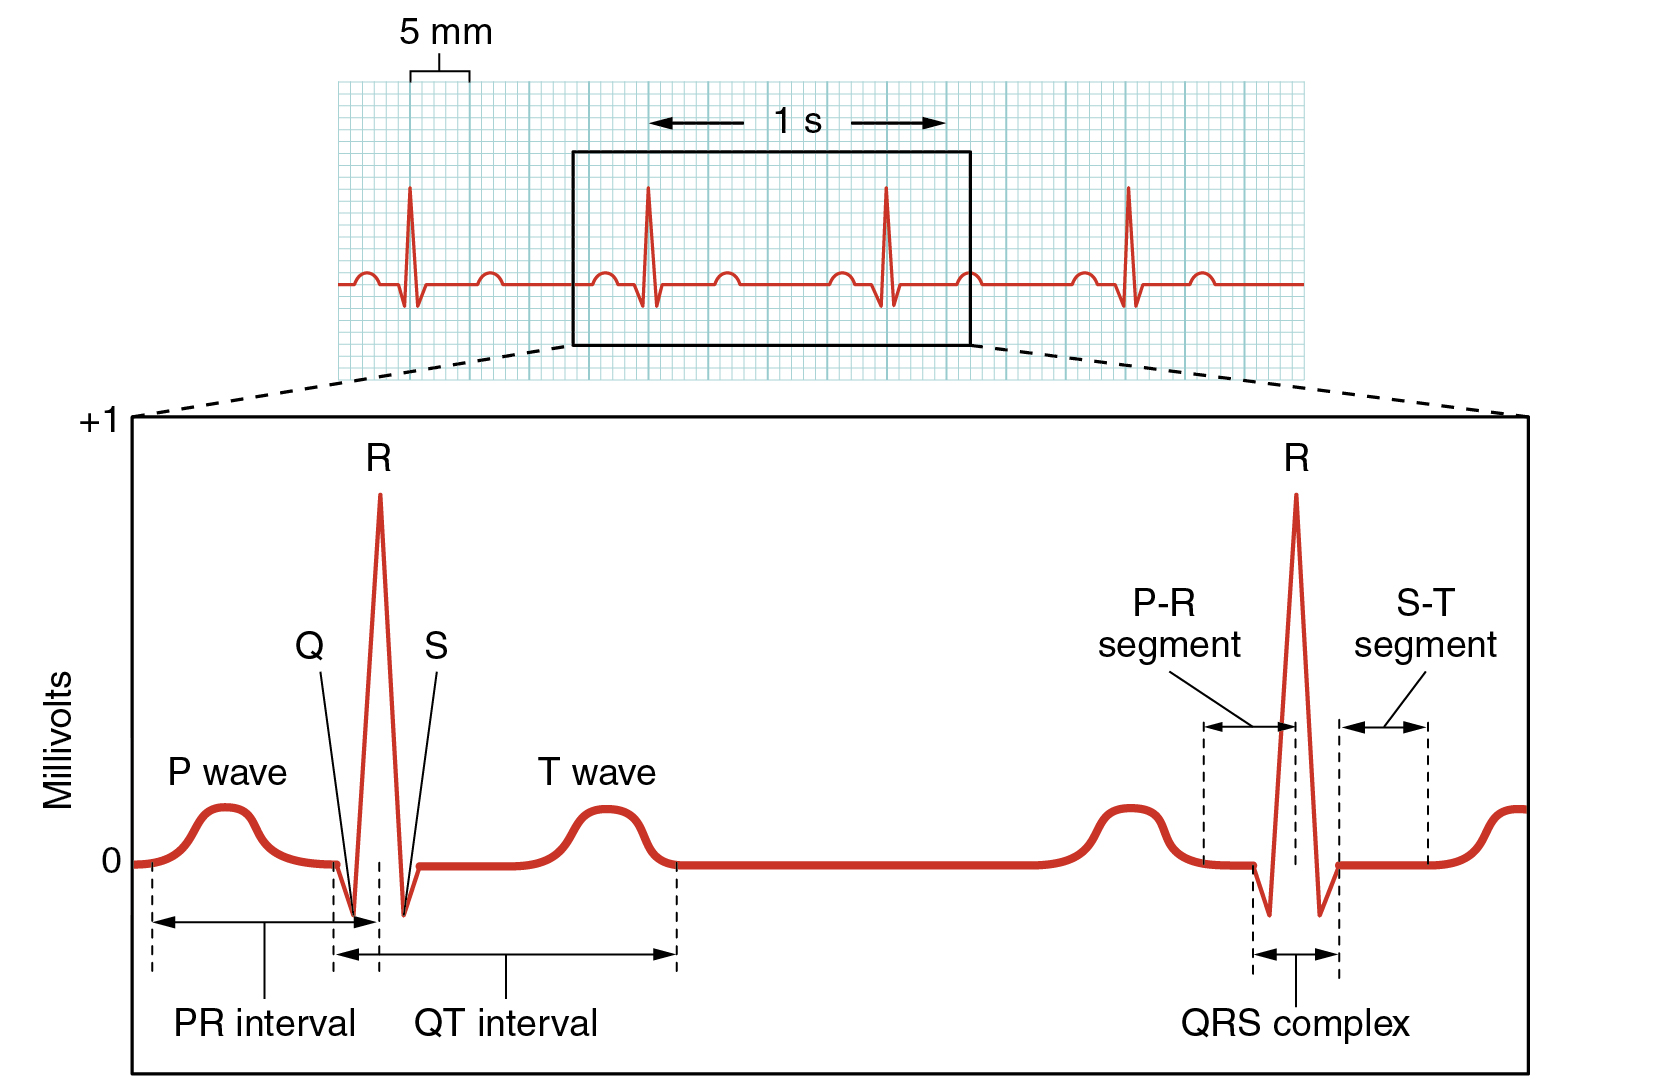 hight resolution of this figure shows a graph of millivolts over time and the heart cycles during an ecg